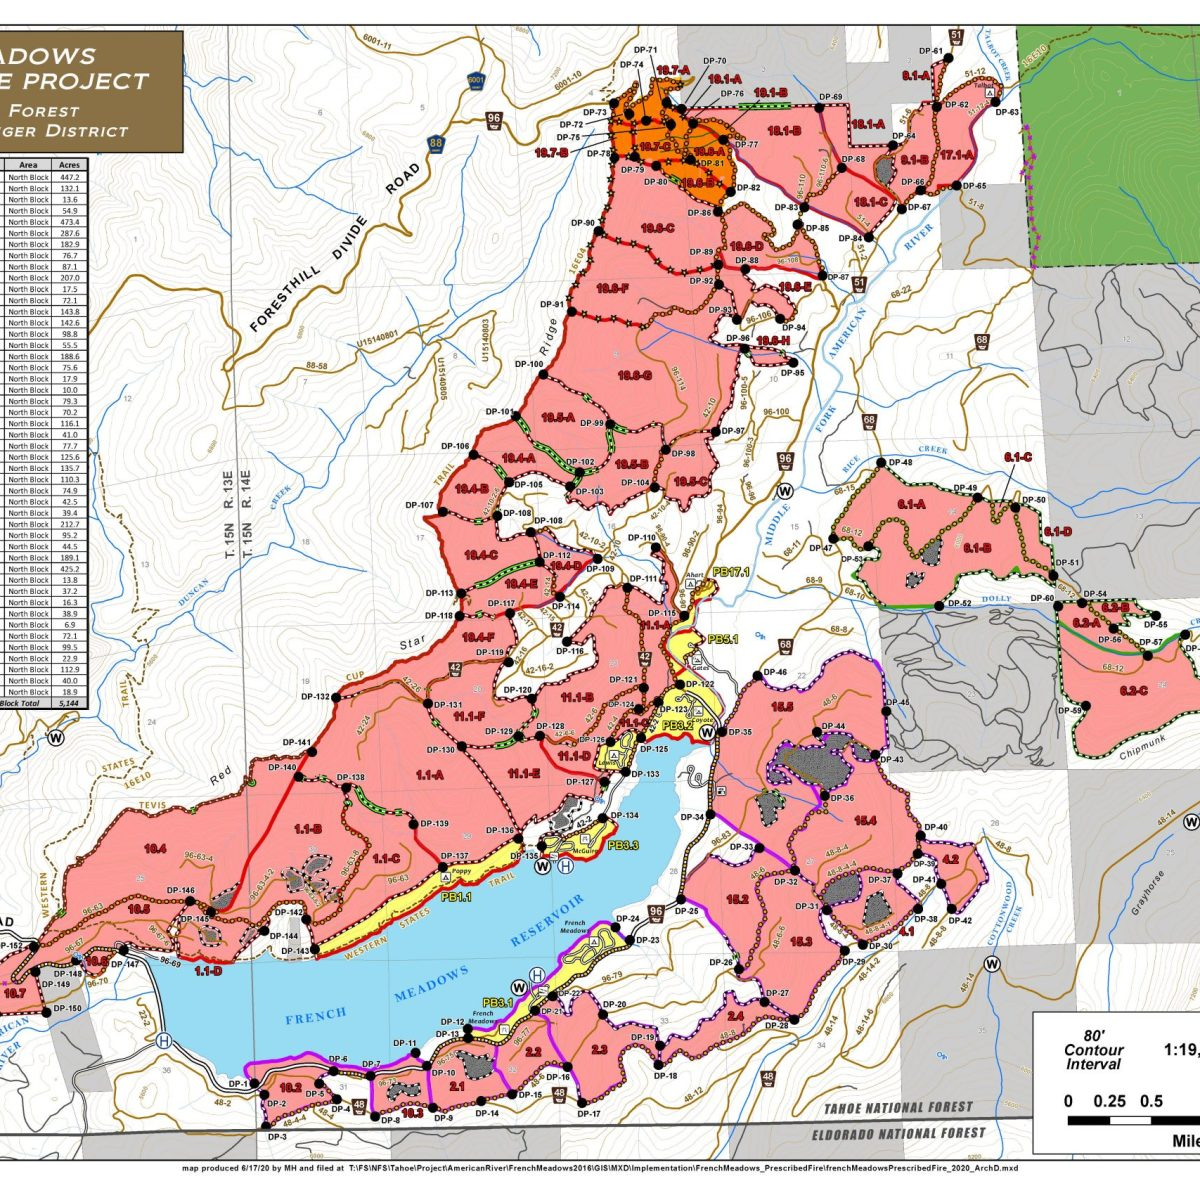 French Meadows prescribed burn map